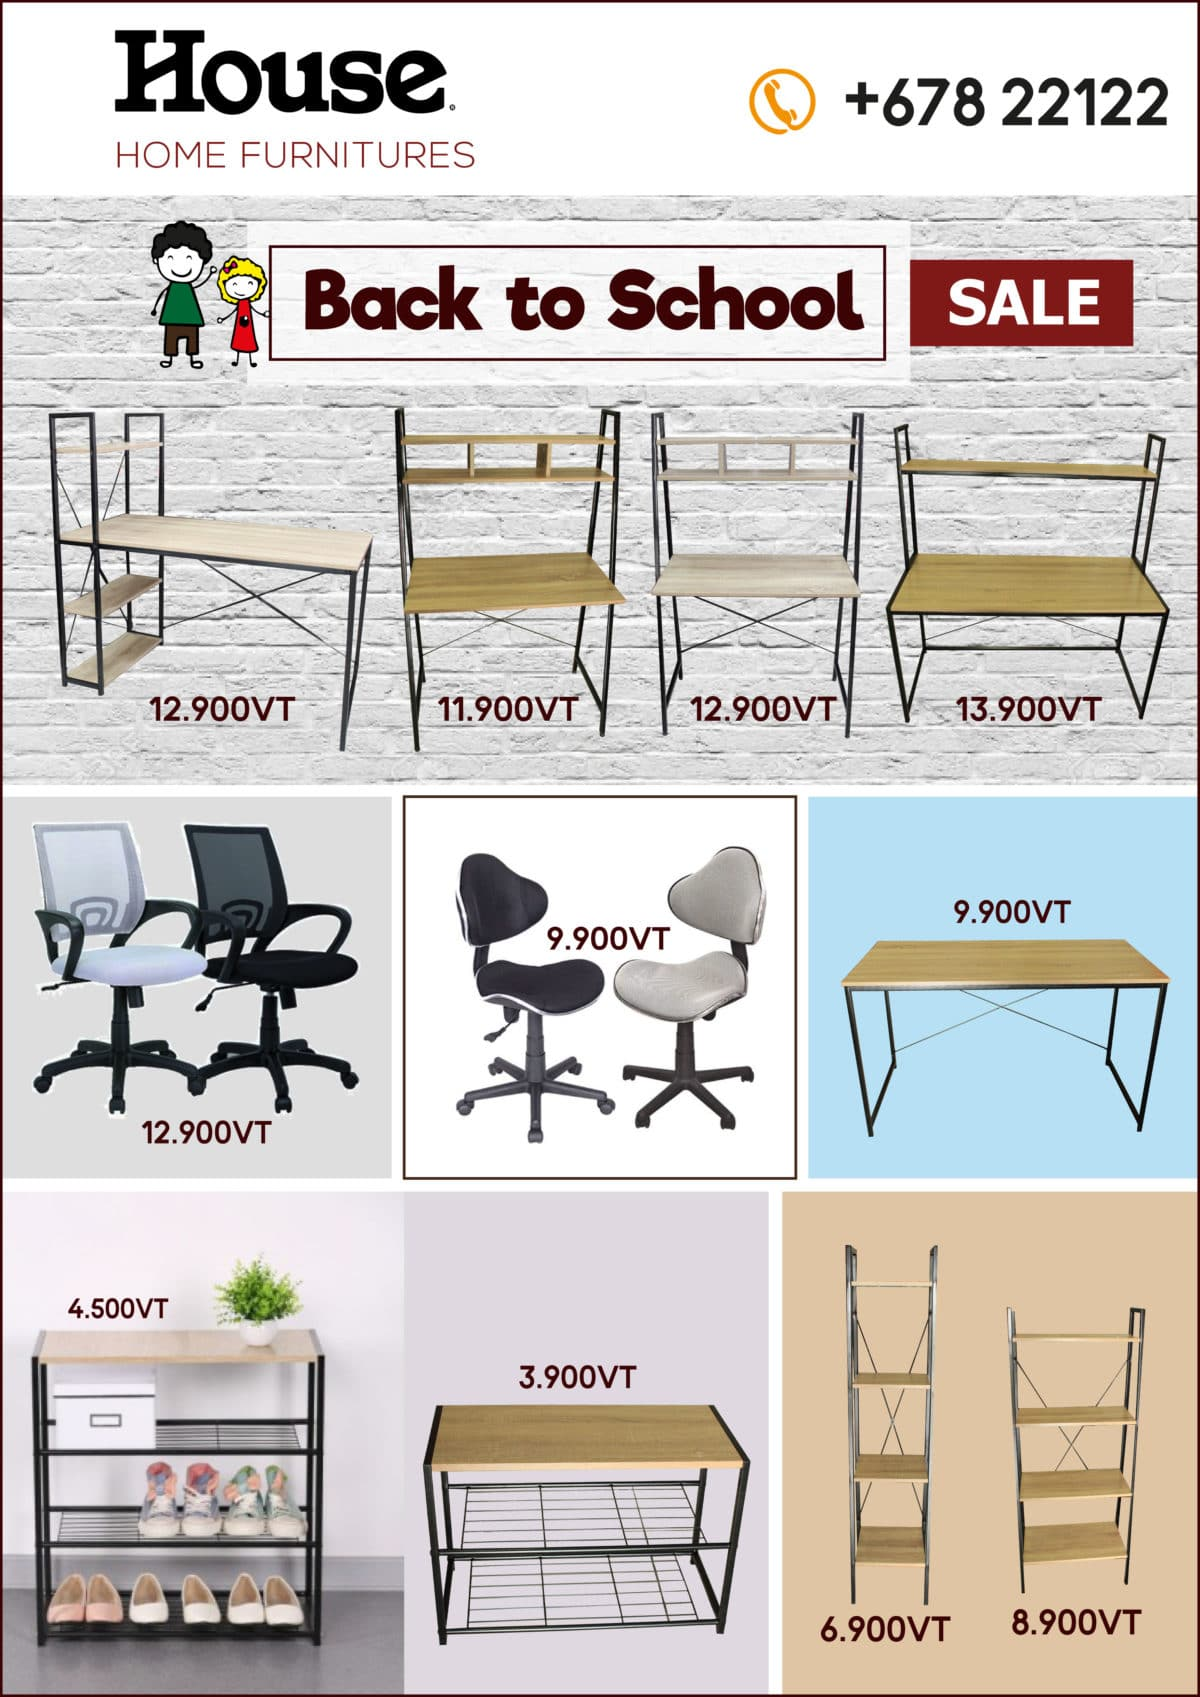 back-to-school-poster